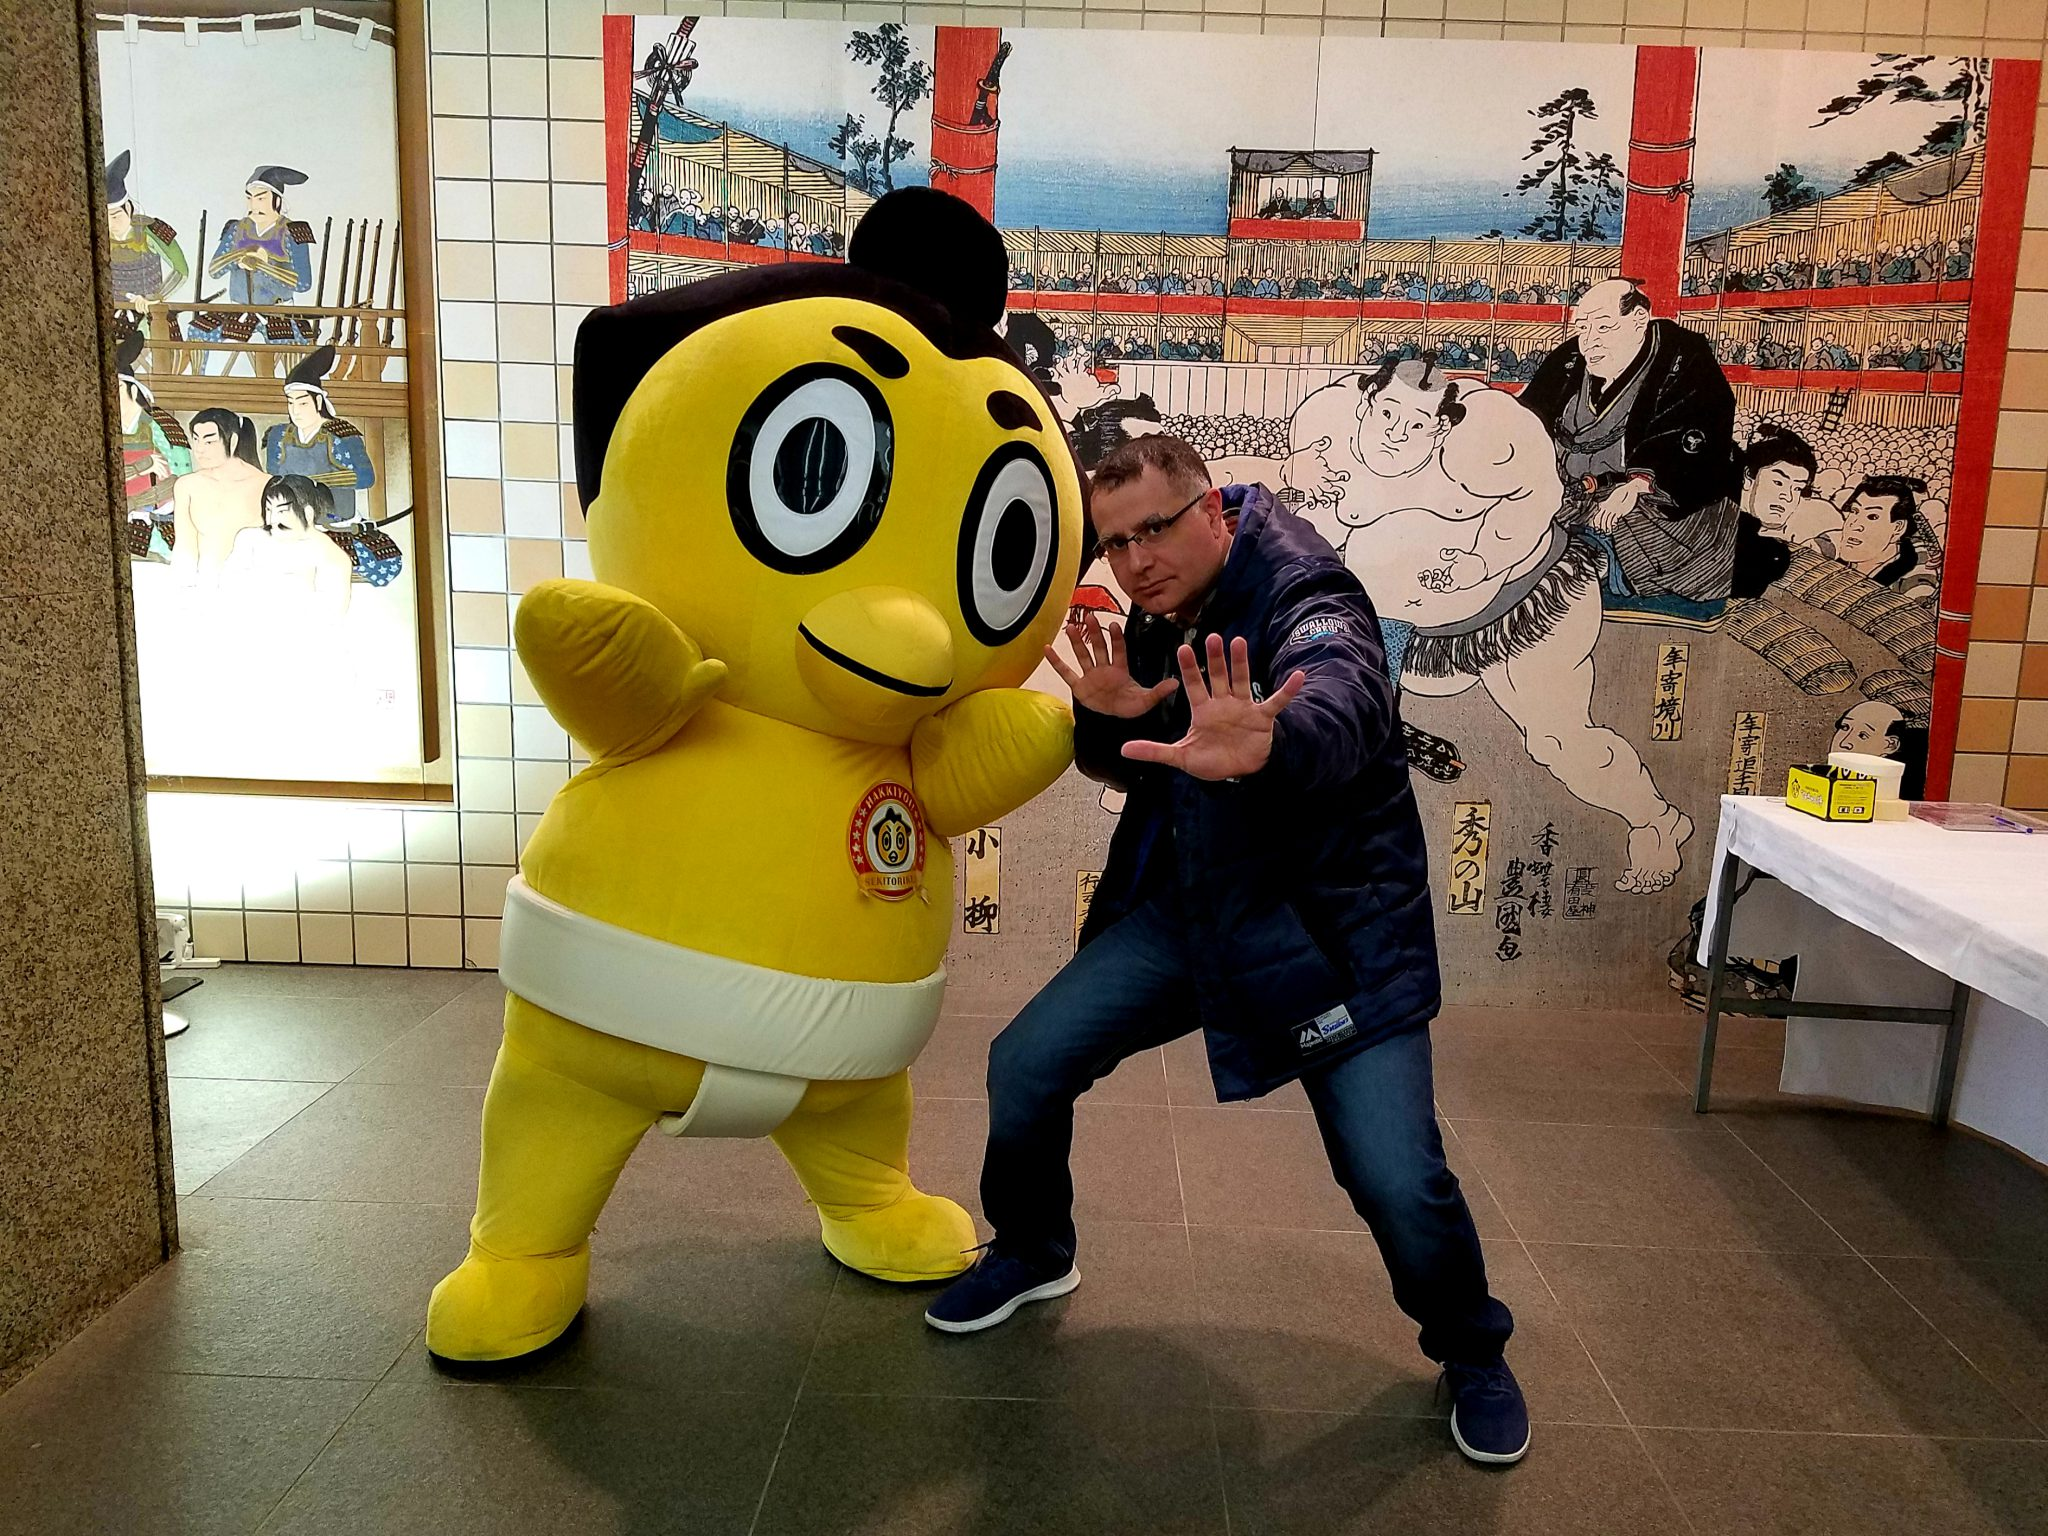 Mac, Founder and Lead Guide of Maction Planet and Hiyonoyama, sumo mascot